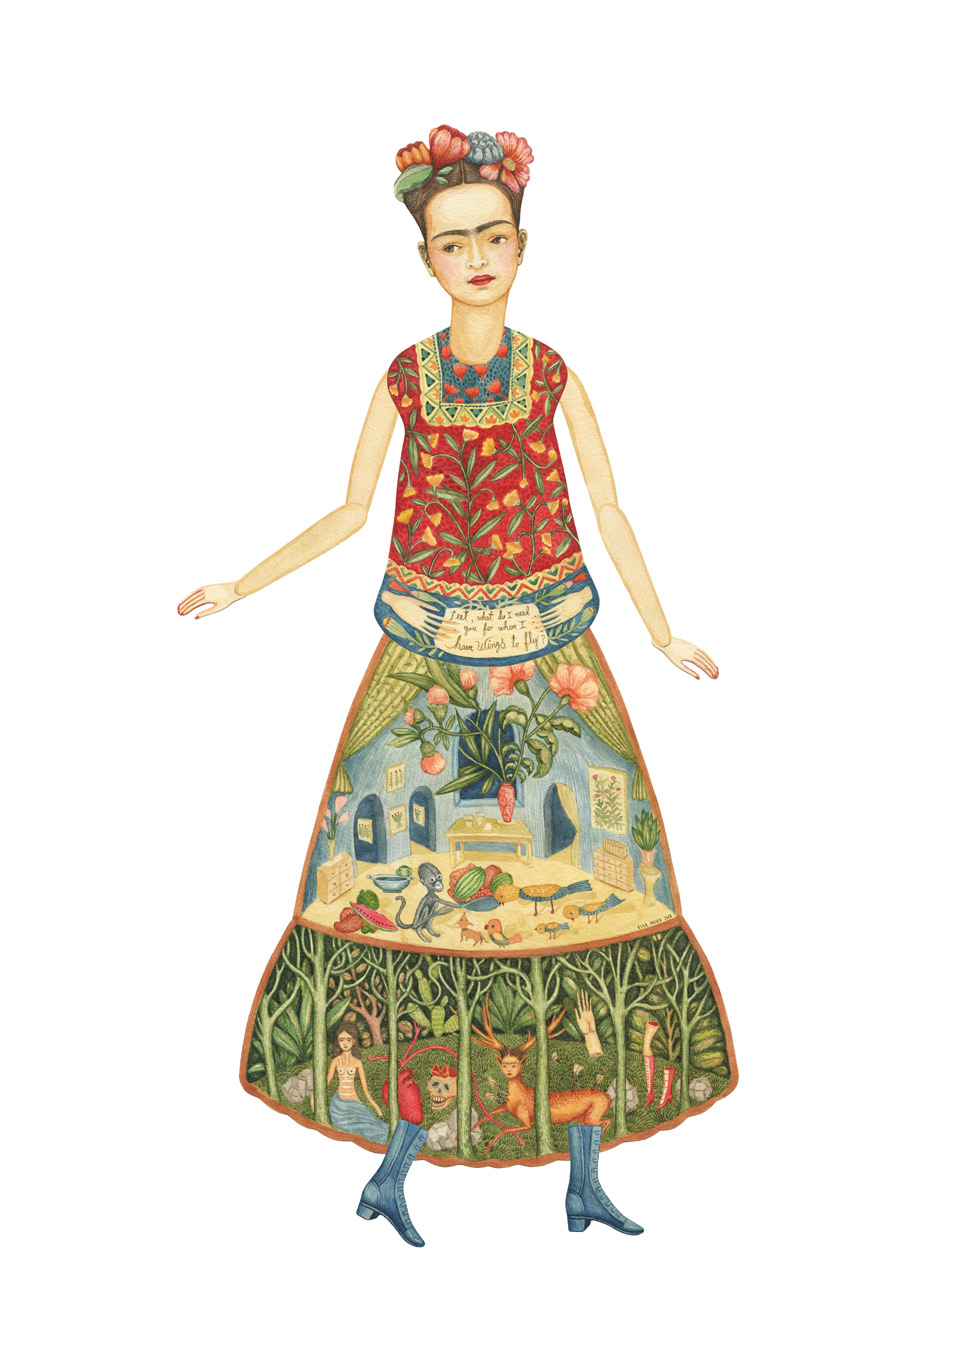 Frida Kahlo by Elsa Mora New Frida Kahlo. A DIY Paper Doll and Print.